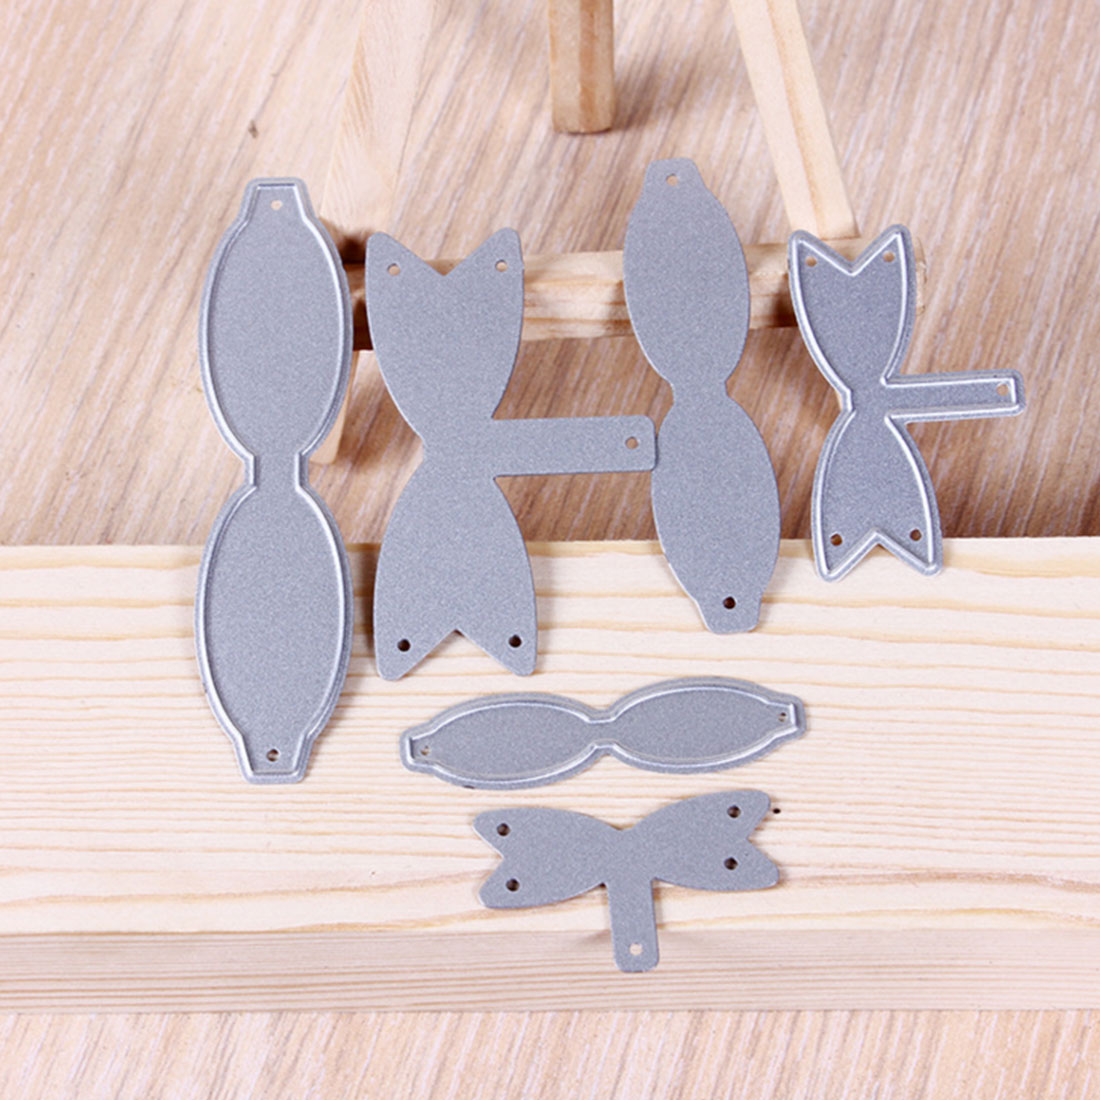 New Arrival Ribbon Bows Metal Cutting Dies Stencils For DIY Scrapbooking/photo Album Decorative Embossing DIY Paper Cards